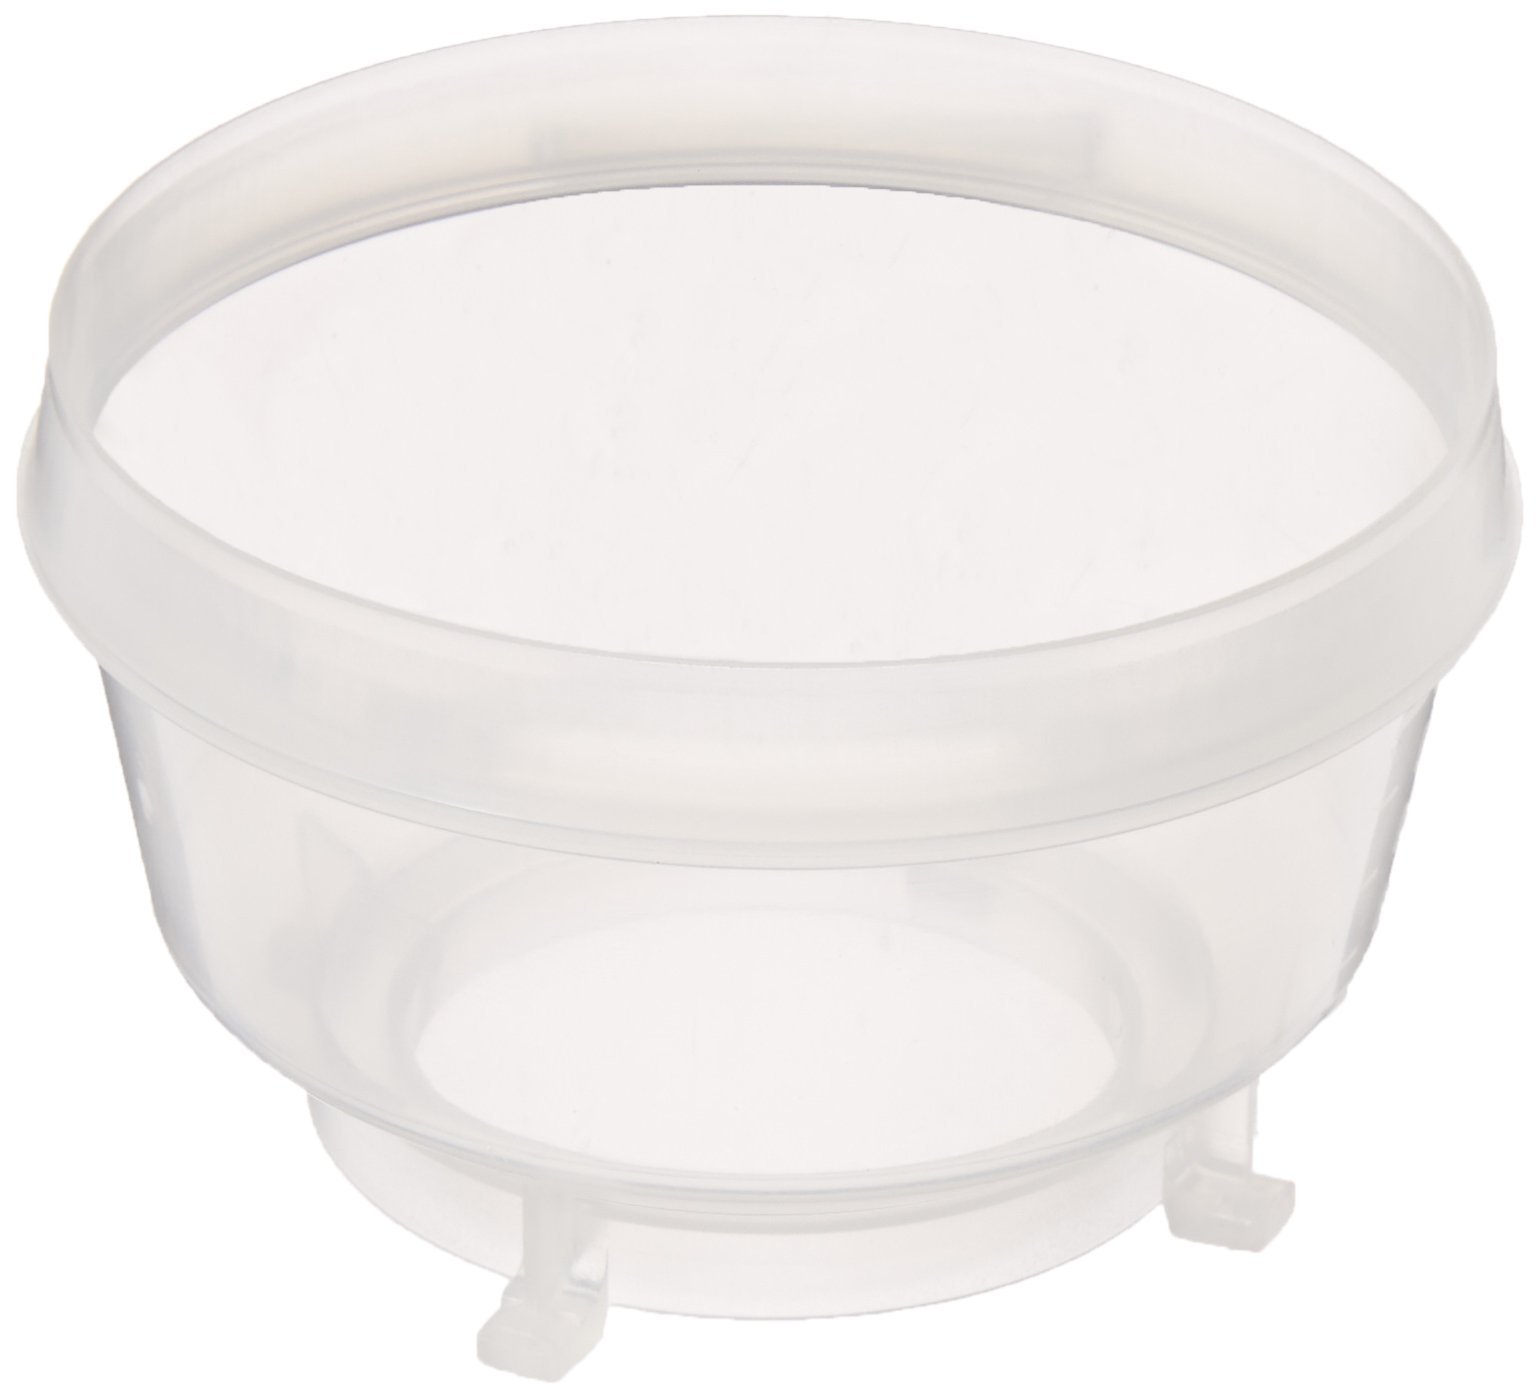 Whatman 10445861 Polypropylene MBS I Filtering Funnel, Autoclavable, 100mL Capacity